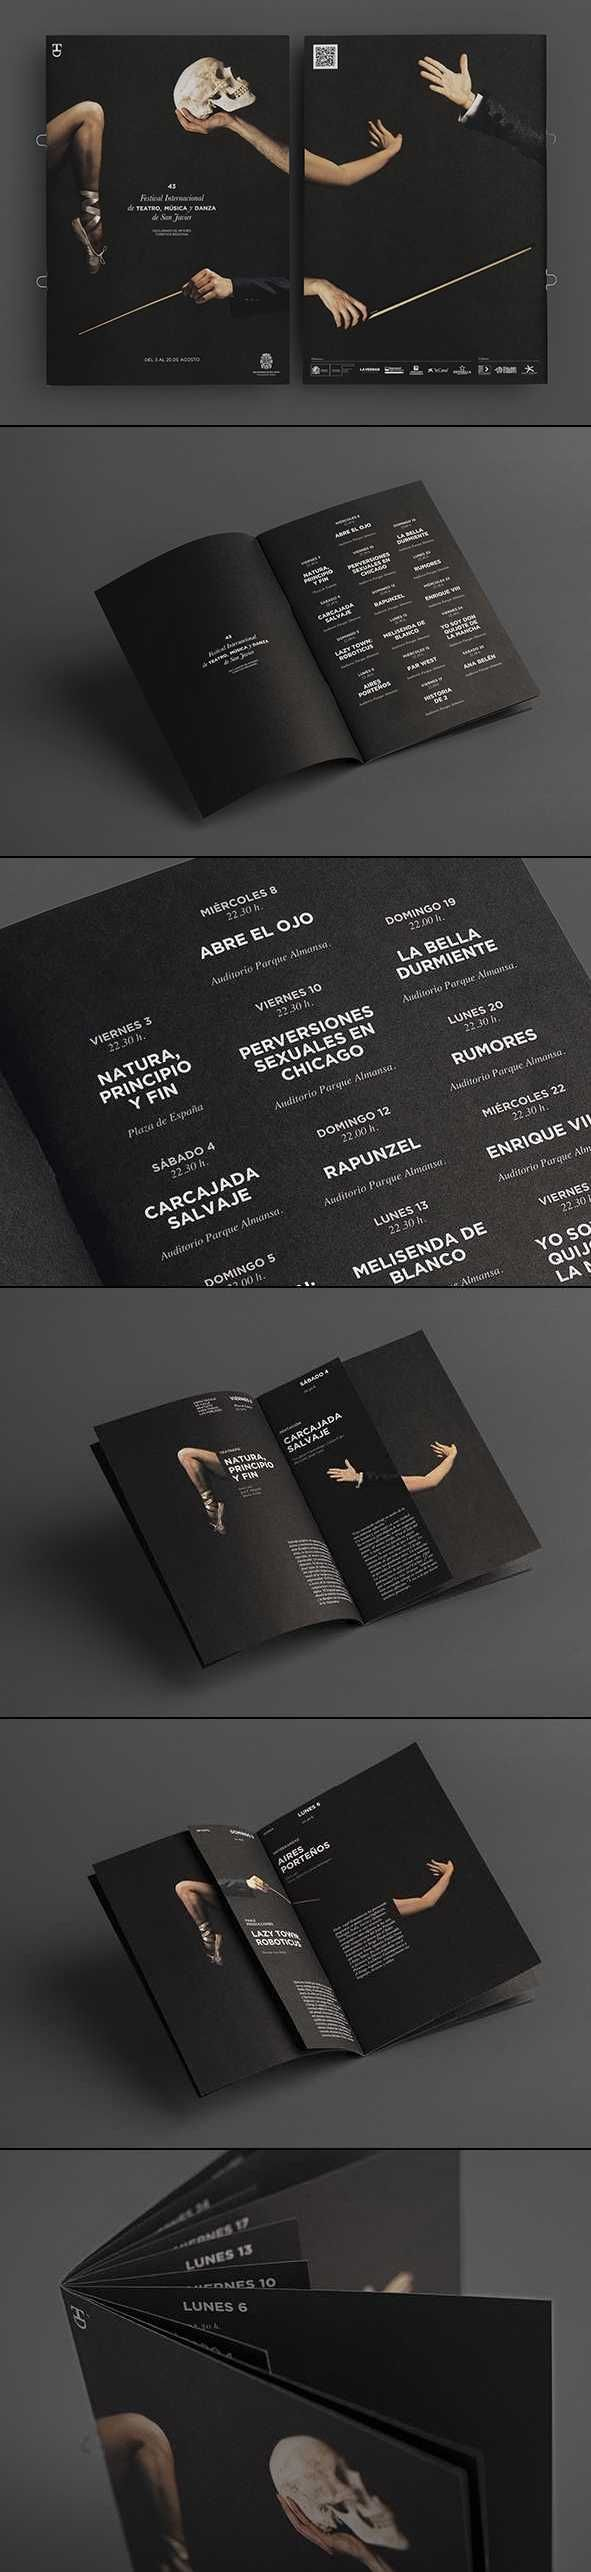 Black works, and it probably always will. Check out these sleek brochures featuring a solid black background